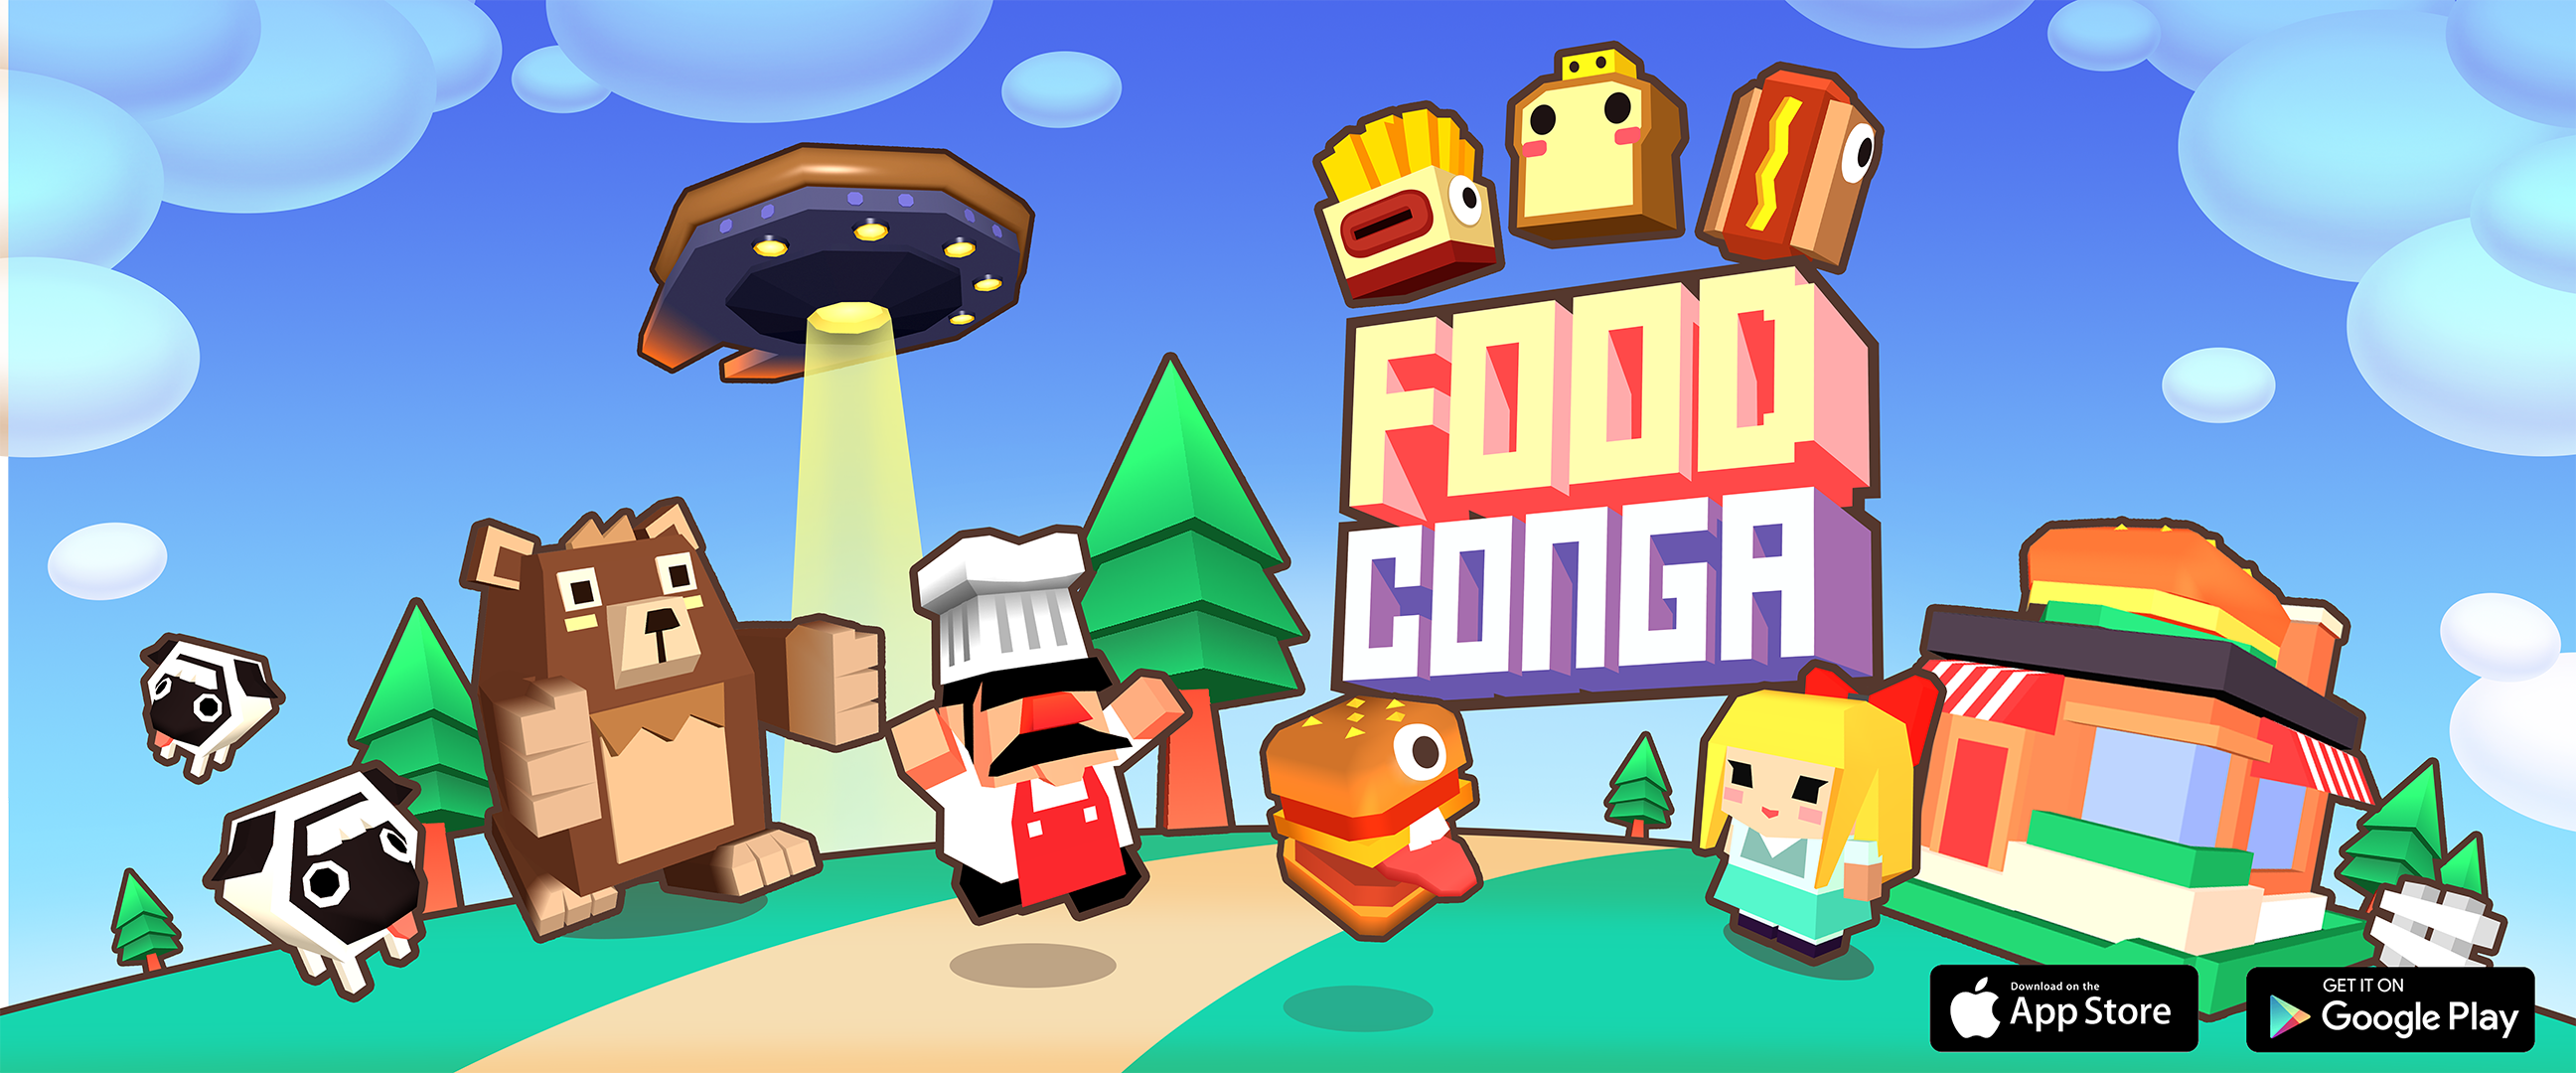 Food Conga is available on iOS & Android